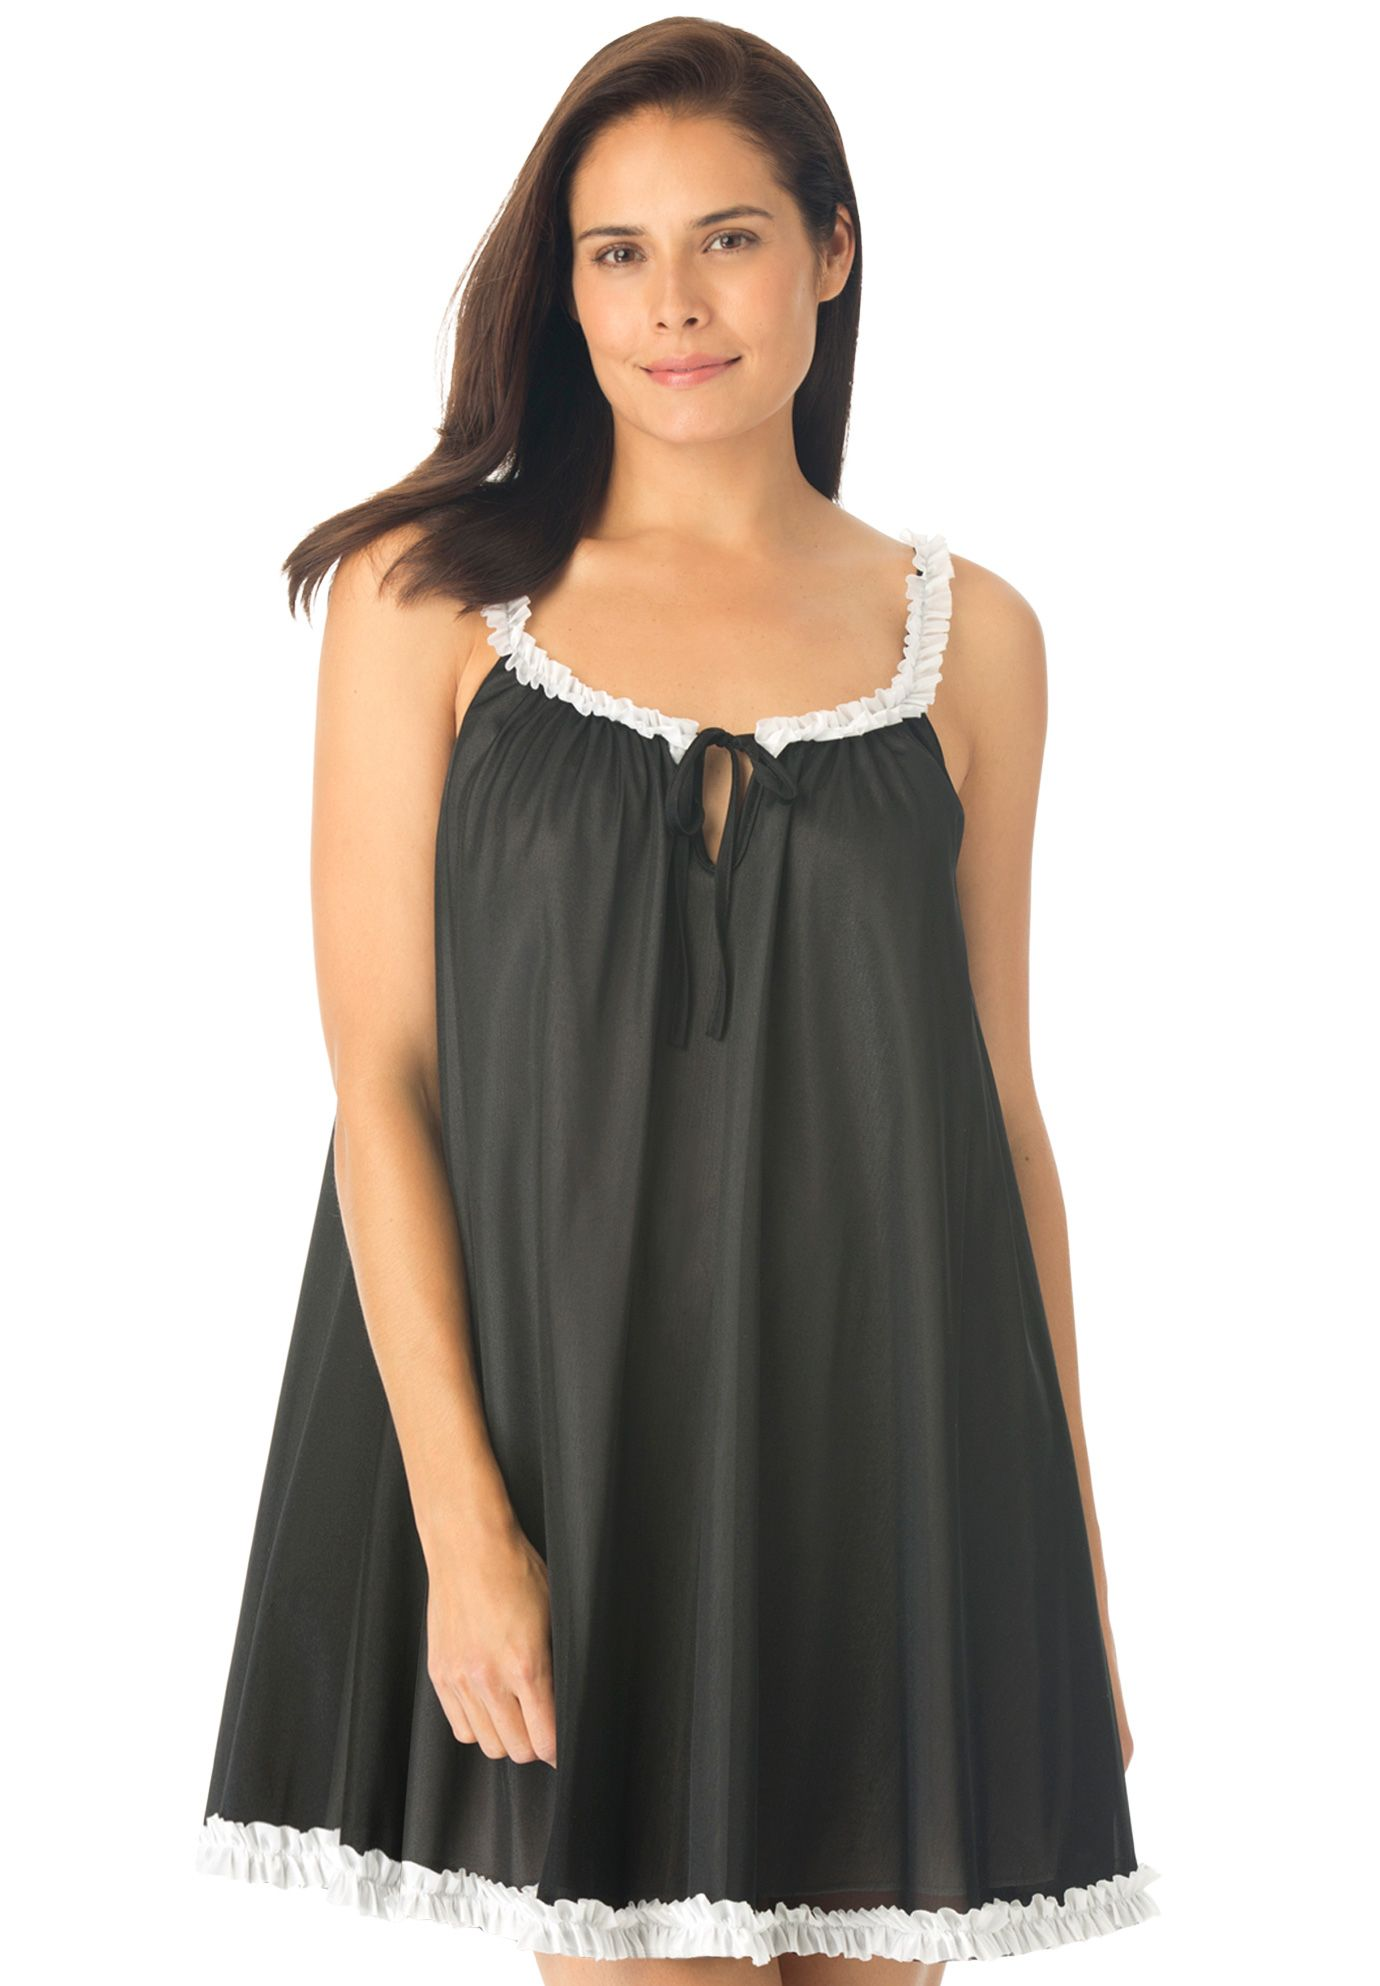 Tricot Babydoll Sleep Gown By Amoureuse Plus Size Nighties